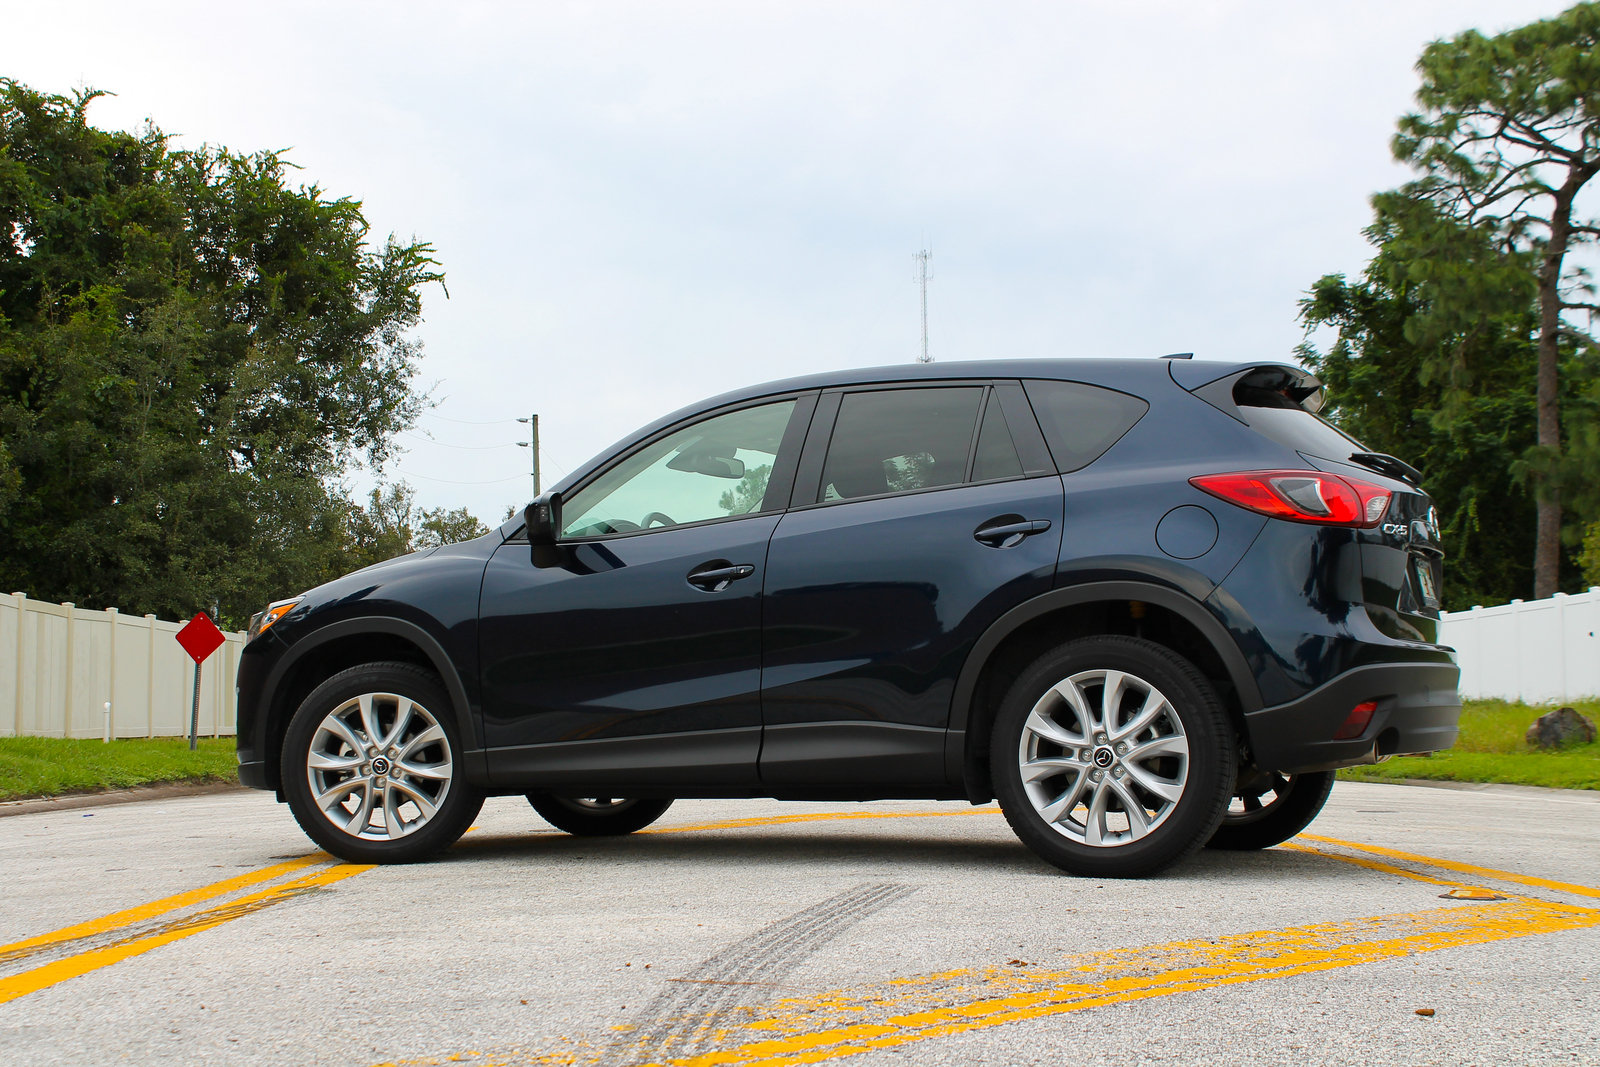 2015 mazda cx 5 grand touring w tech package driven picture 572468 car review top speed. Black Bedroom Furniture Sets. Home Design Ideas